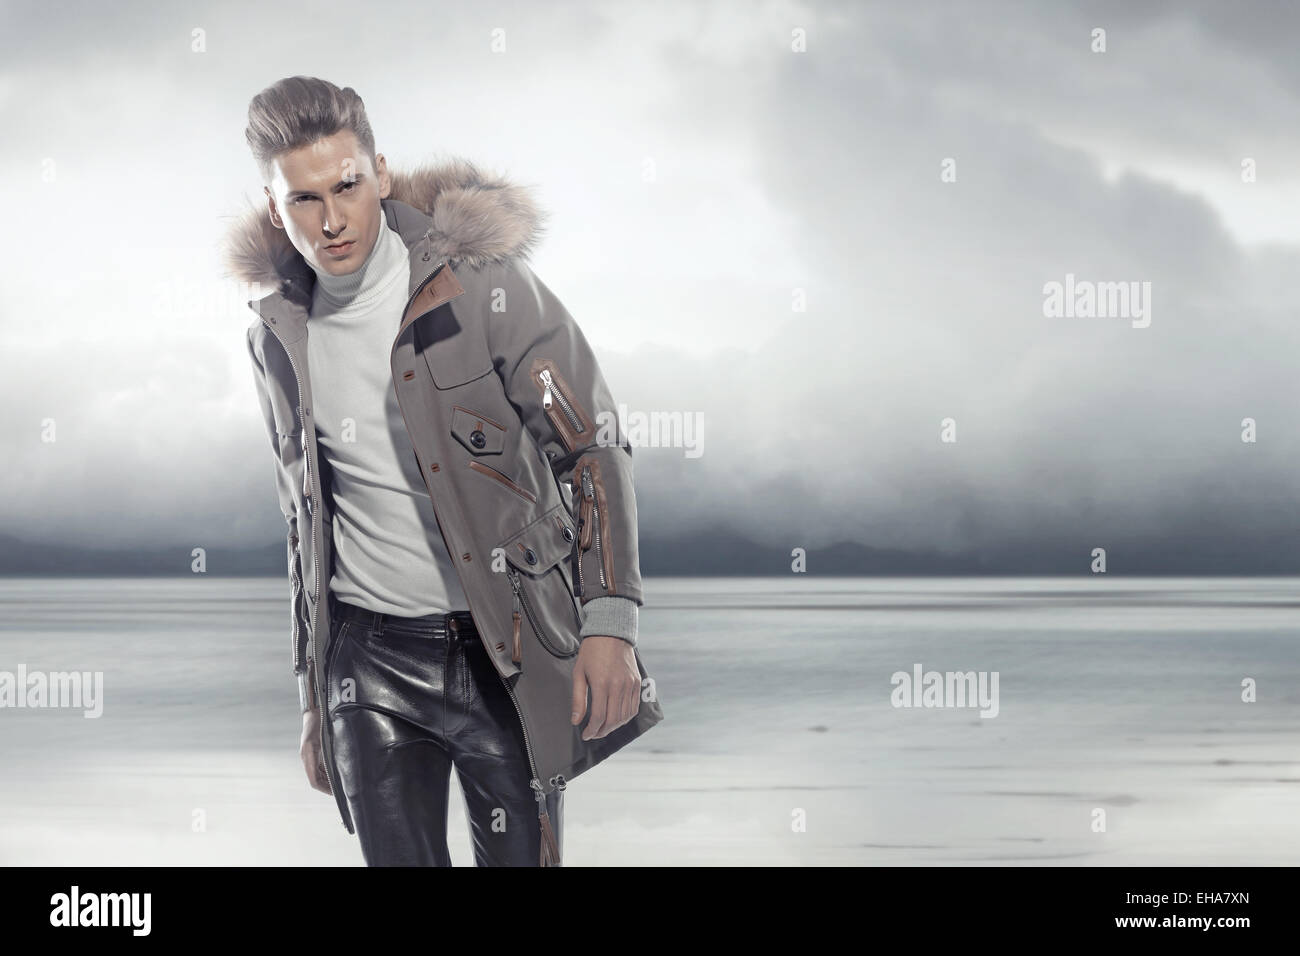 Elegant man walking in the freezing winter - Stock Image